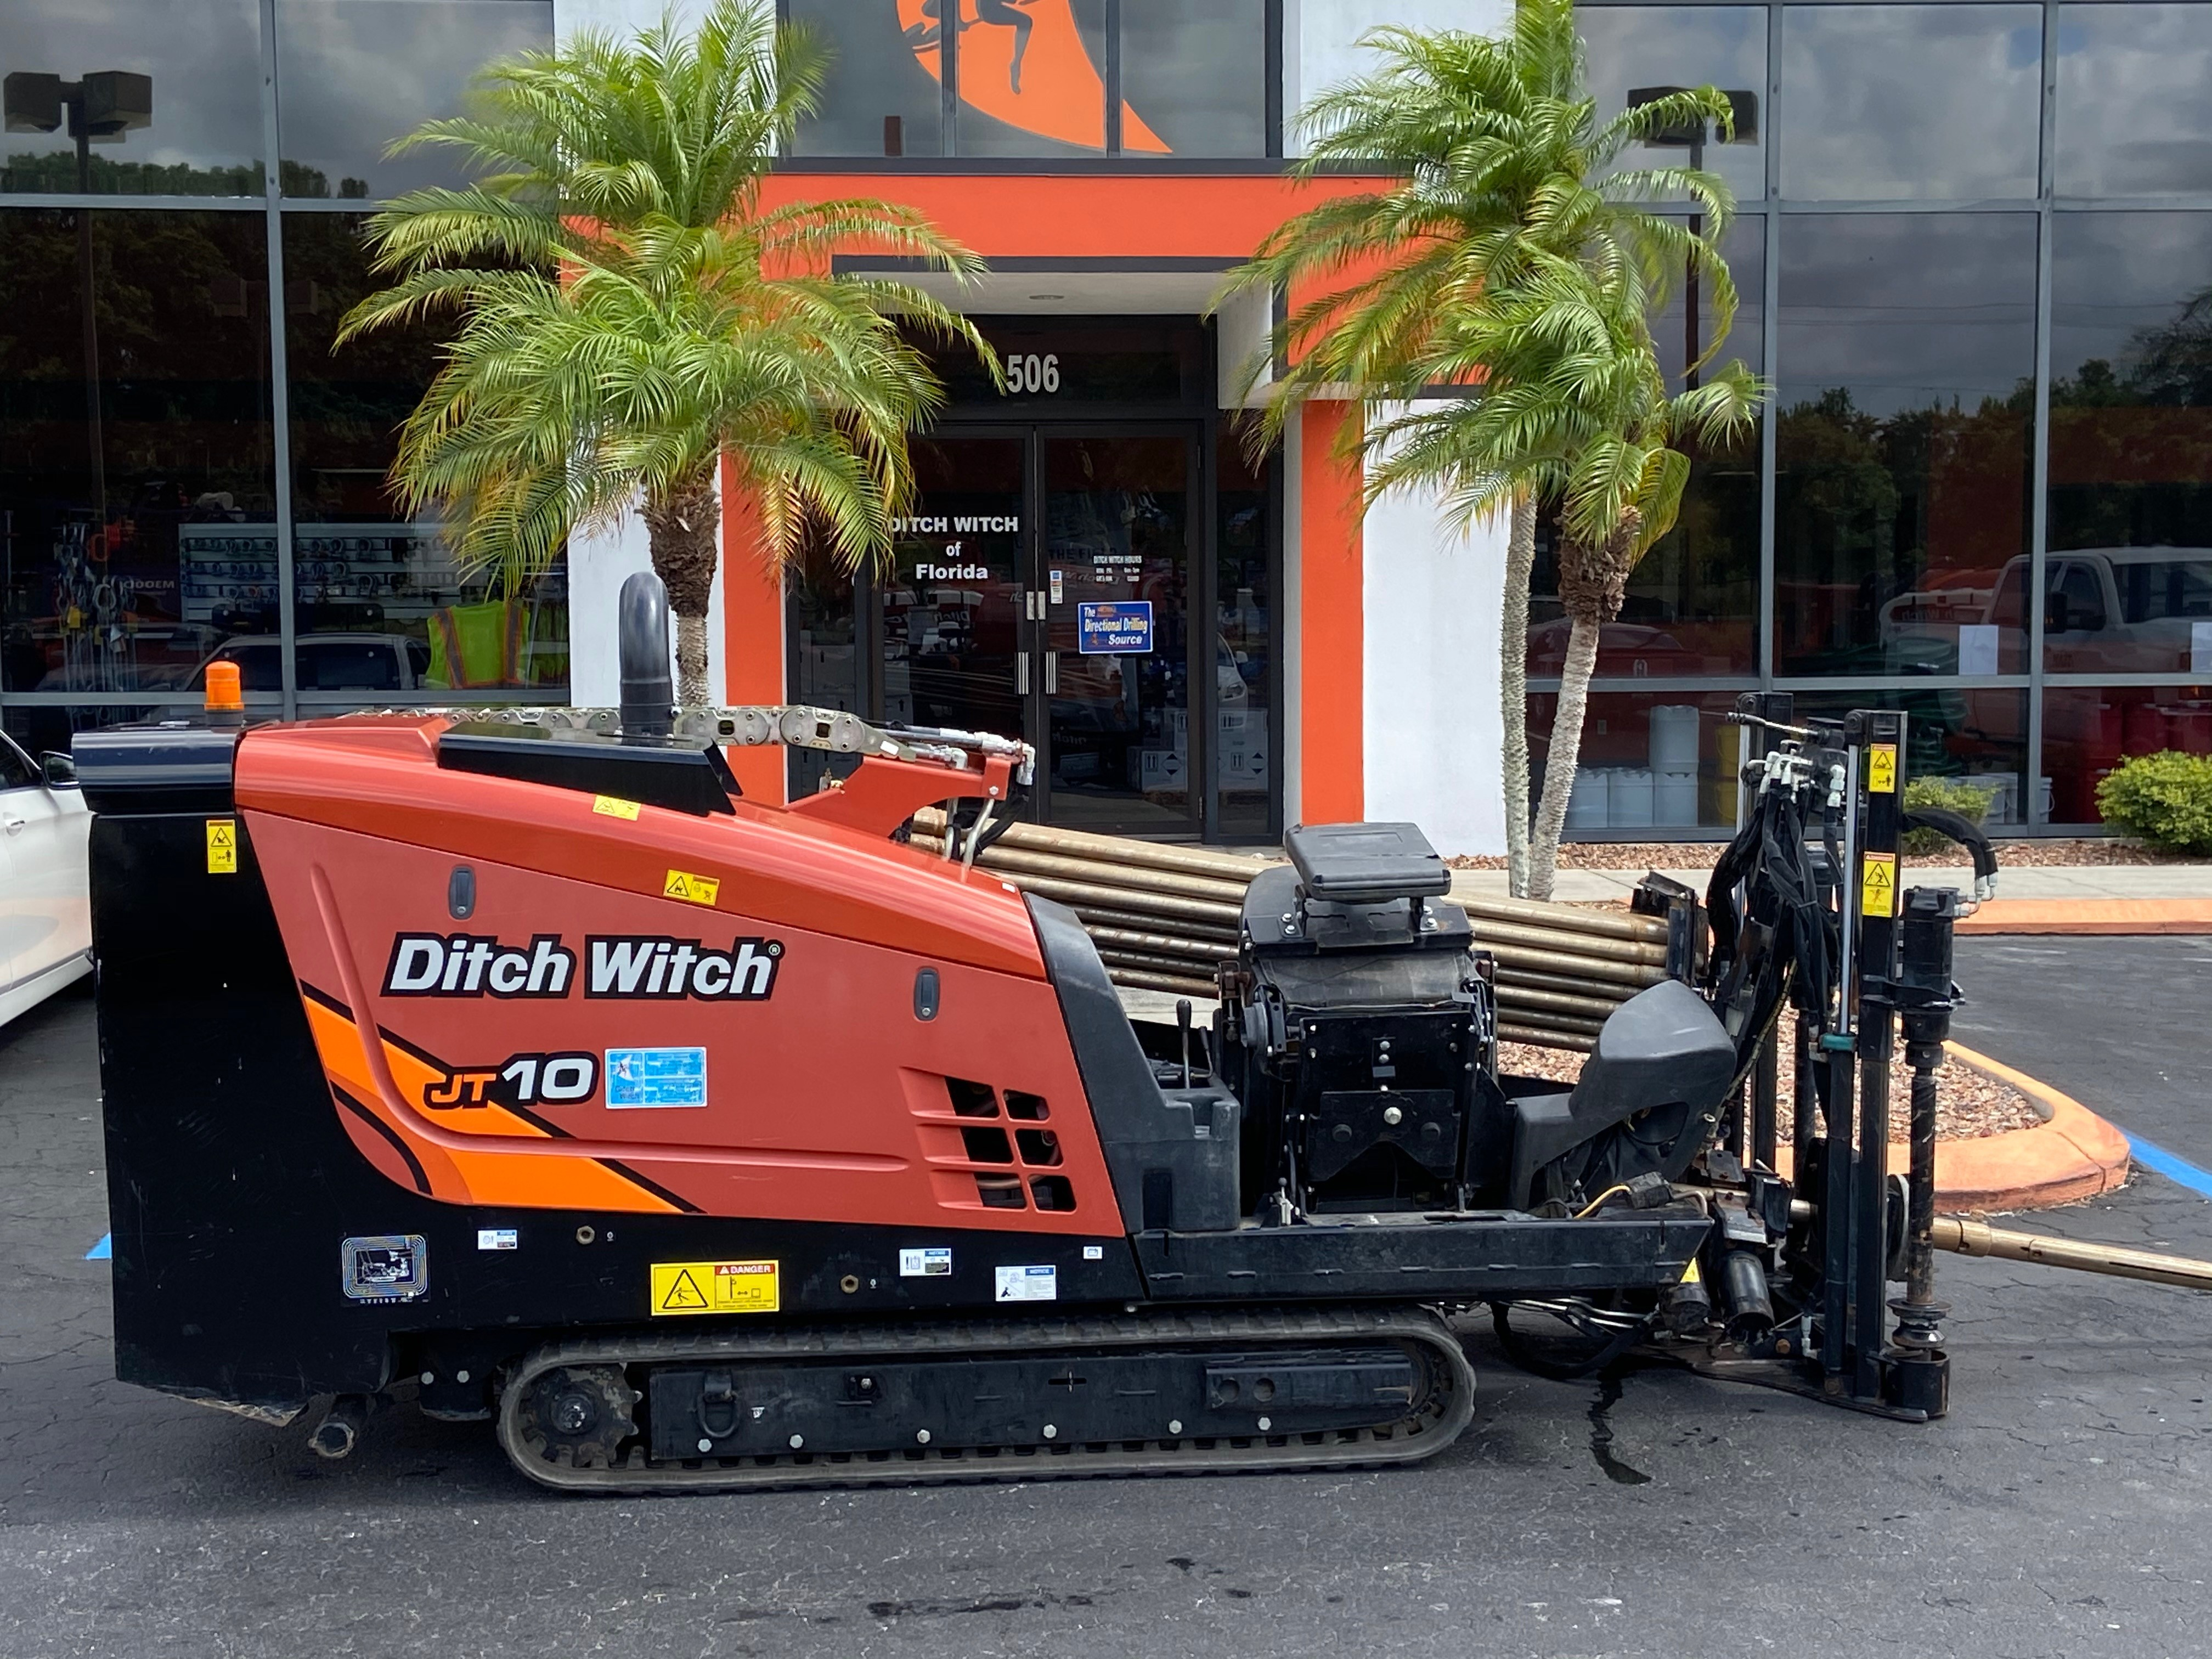 Used, 2018, Ditch Witch, JT10, 16 gpm, 300' Ditch Witch Fluid Miser Pipe, Housing and Bit, Boring / Drilling Machines